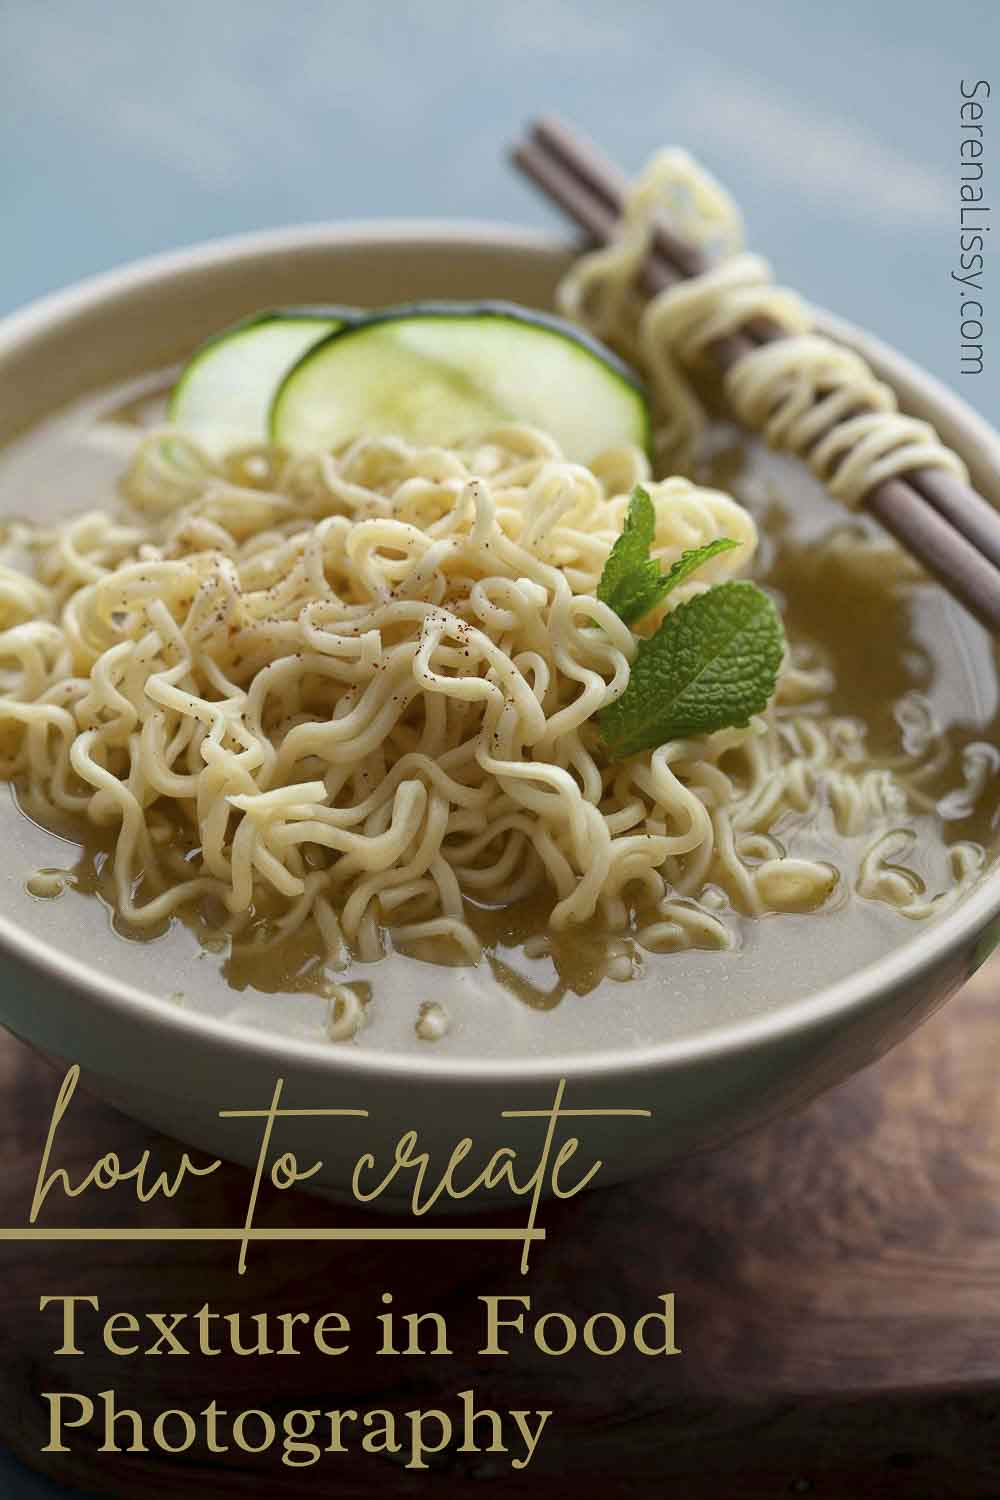 How To Create Texture In Food Photography